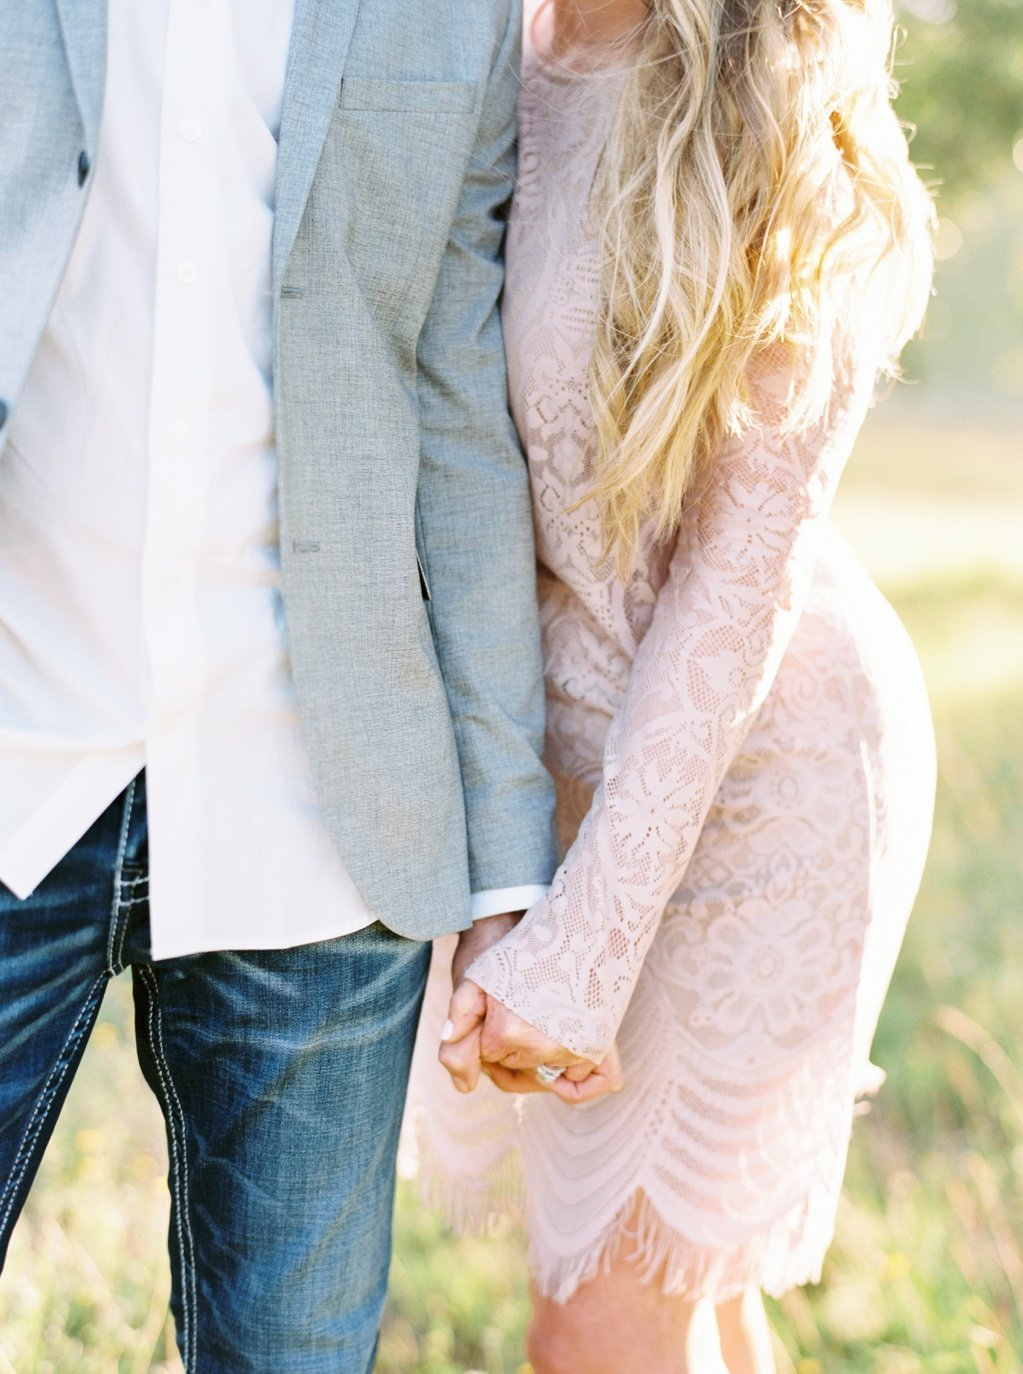 New_Braunfels_Texas_Film_Engagement_Photographer_0019